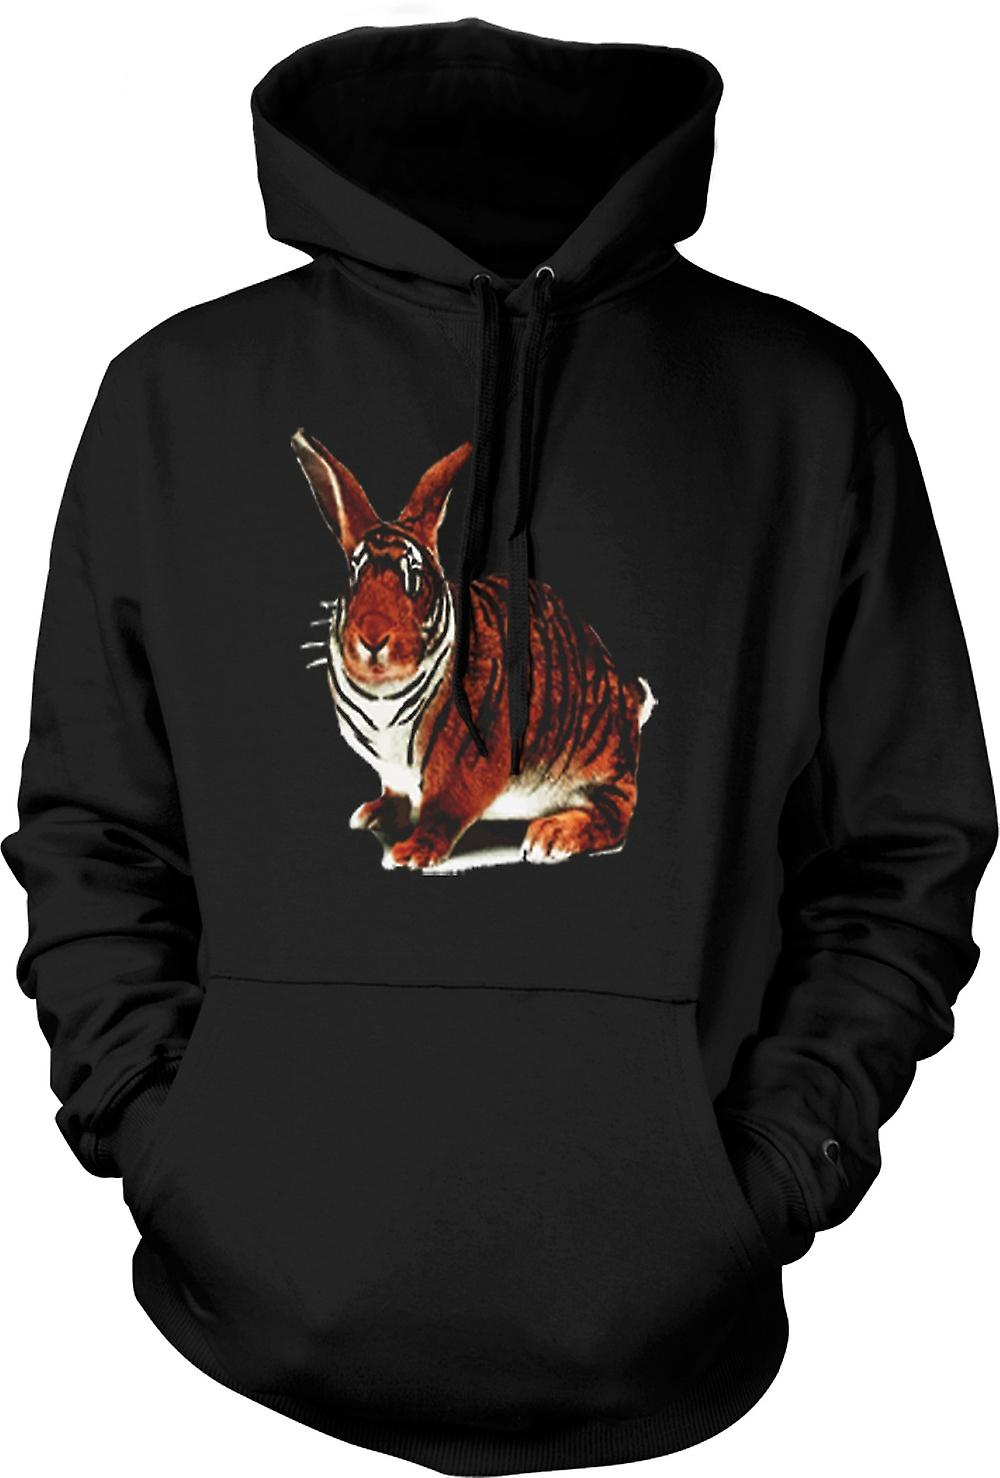 Enfant Sweat Capuche - Tiger Lapin Pop Art Design